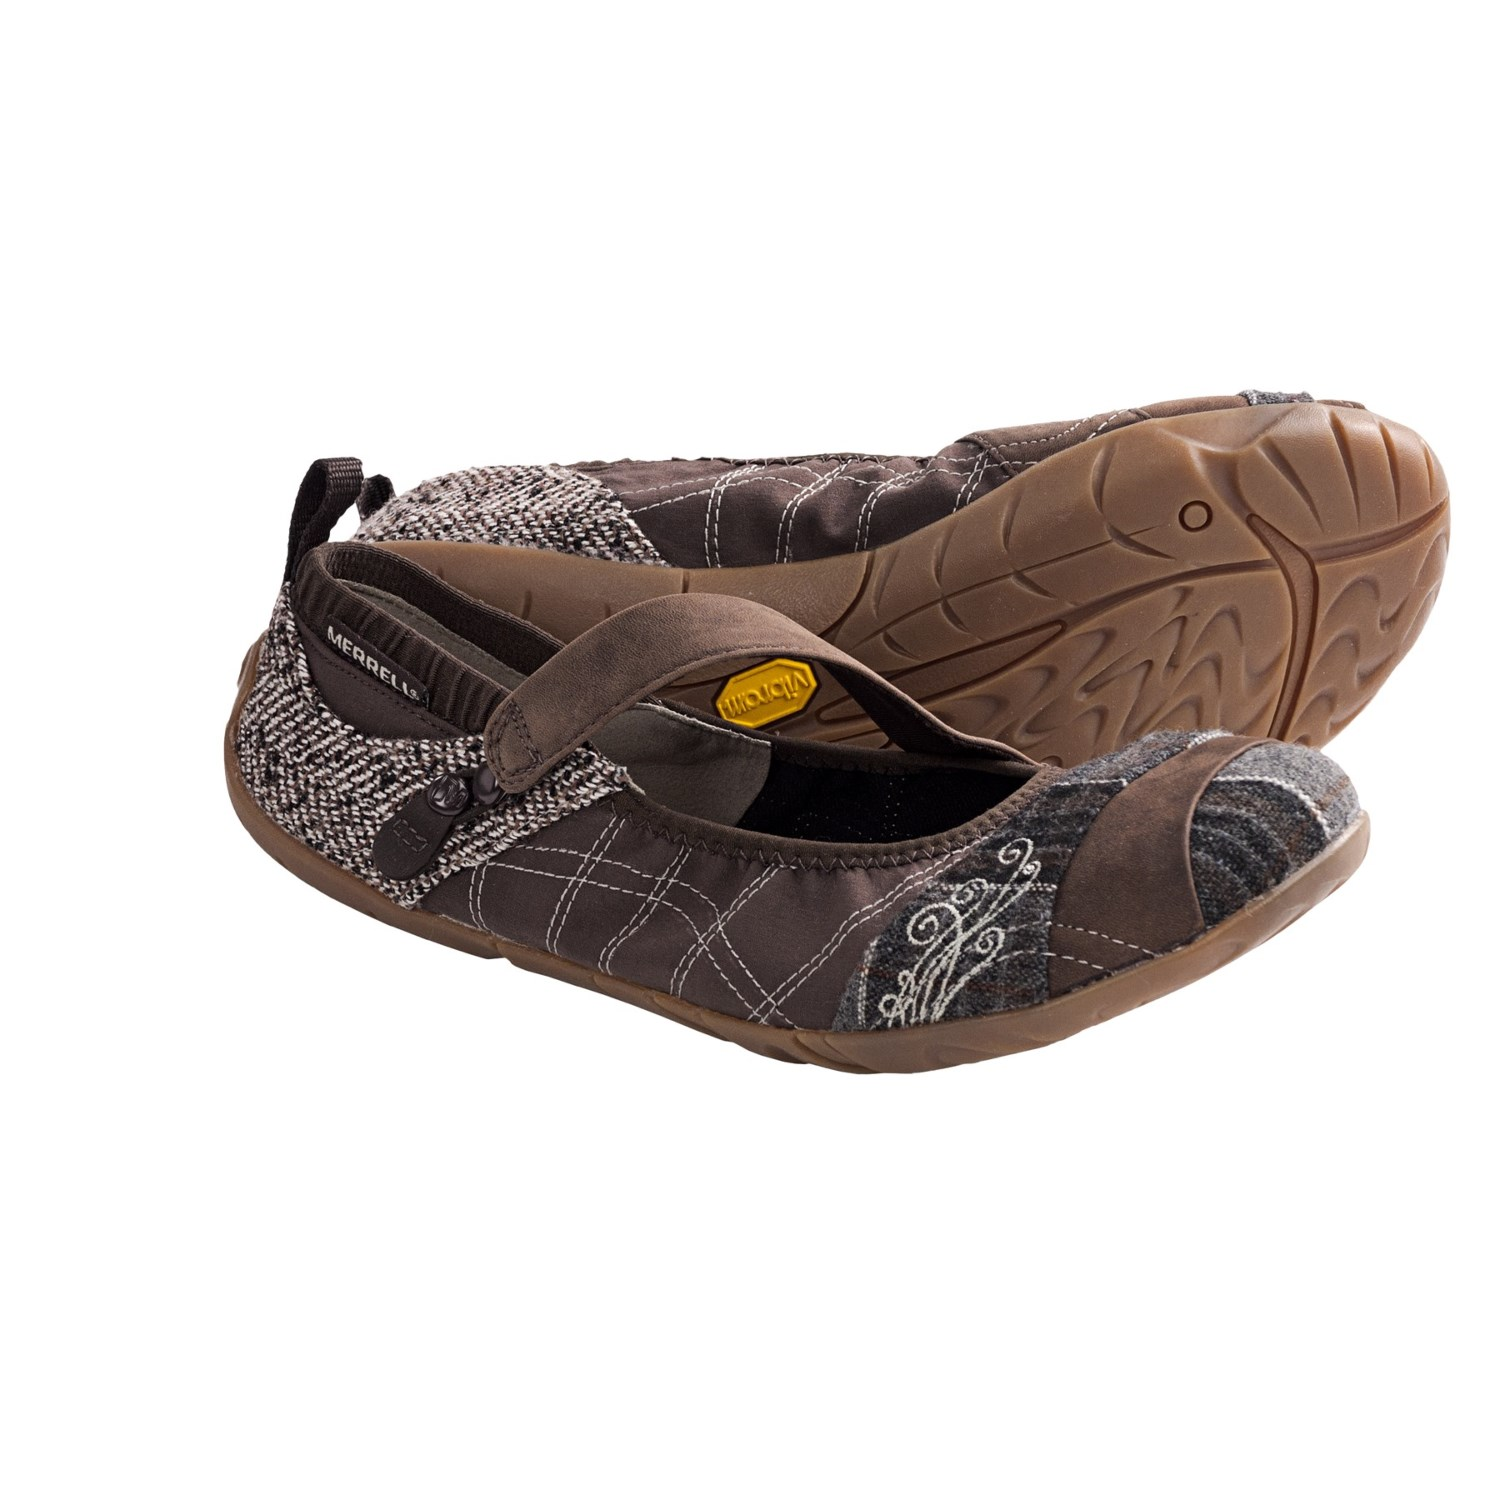 Merrell Minimalist Dress Shoes